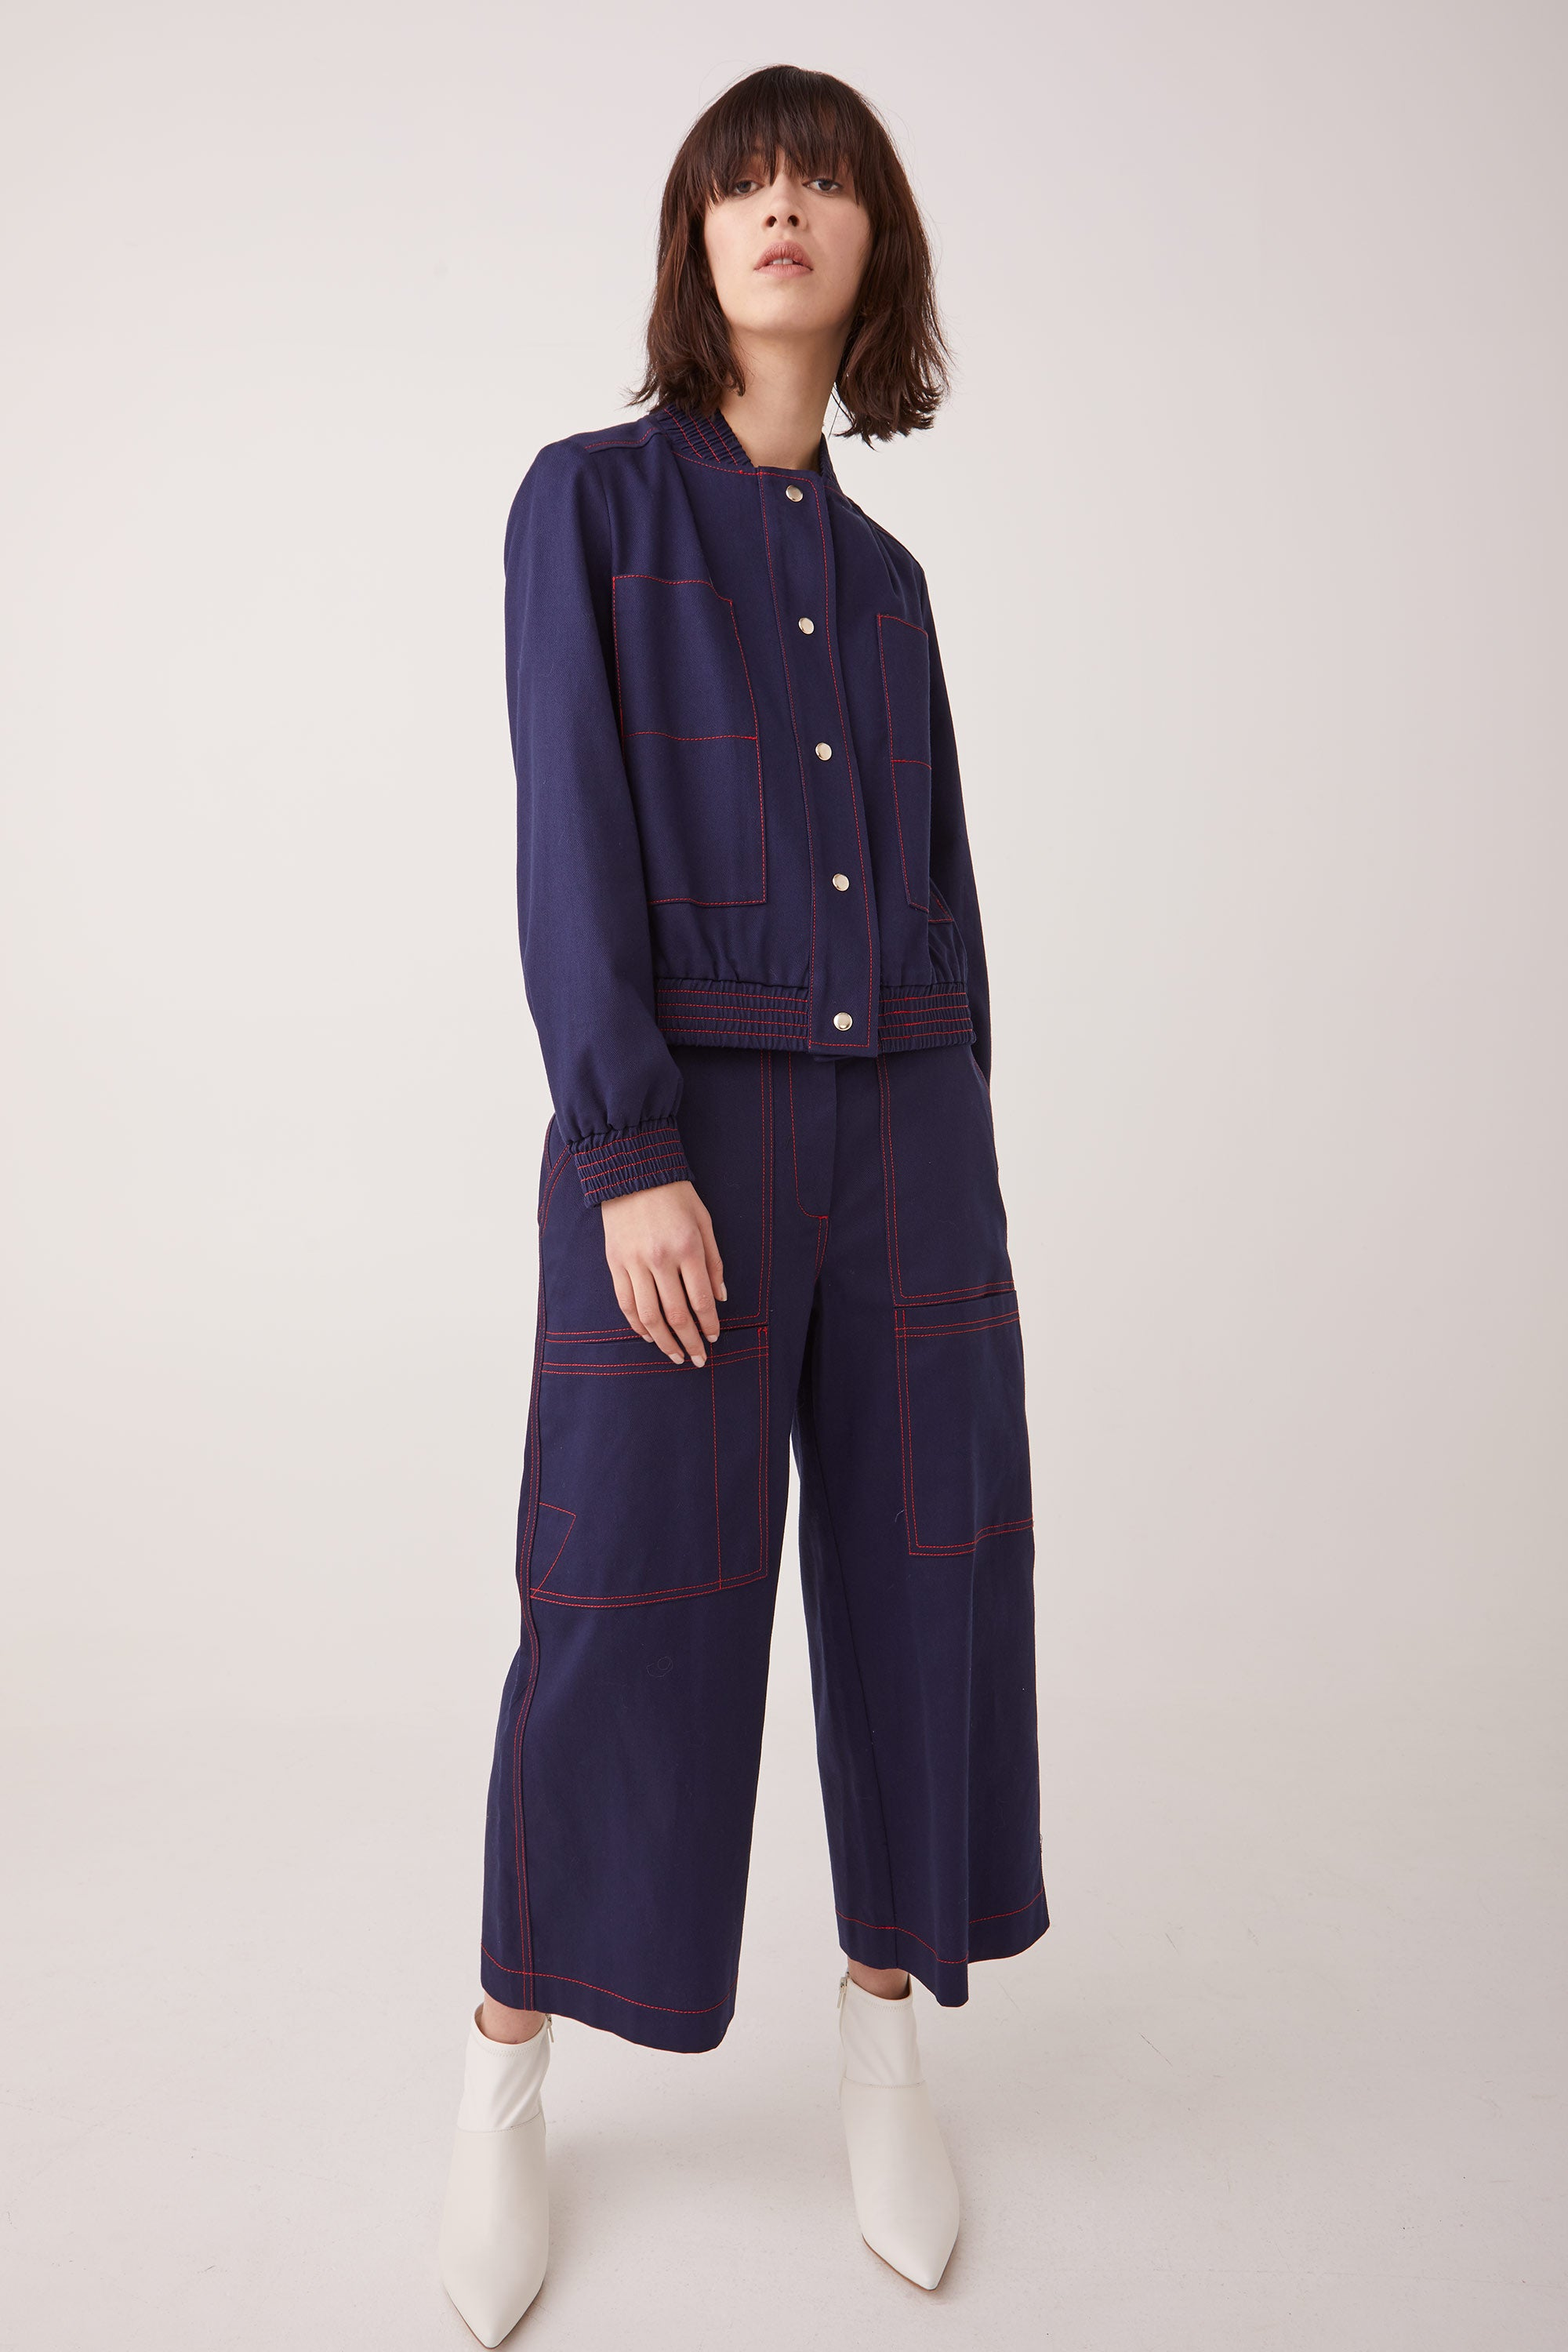 Ricochet NZ Fashion Designer Clothing Boutique AW19 Matsudo Pant Jean Made in NZ